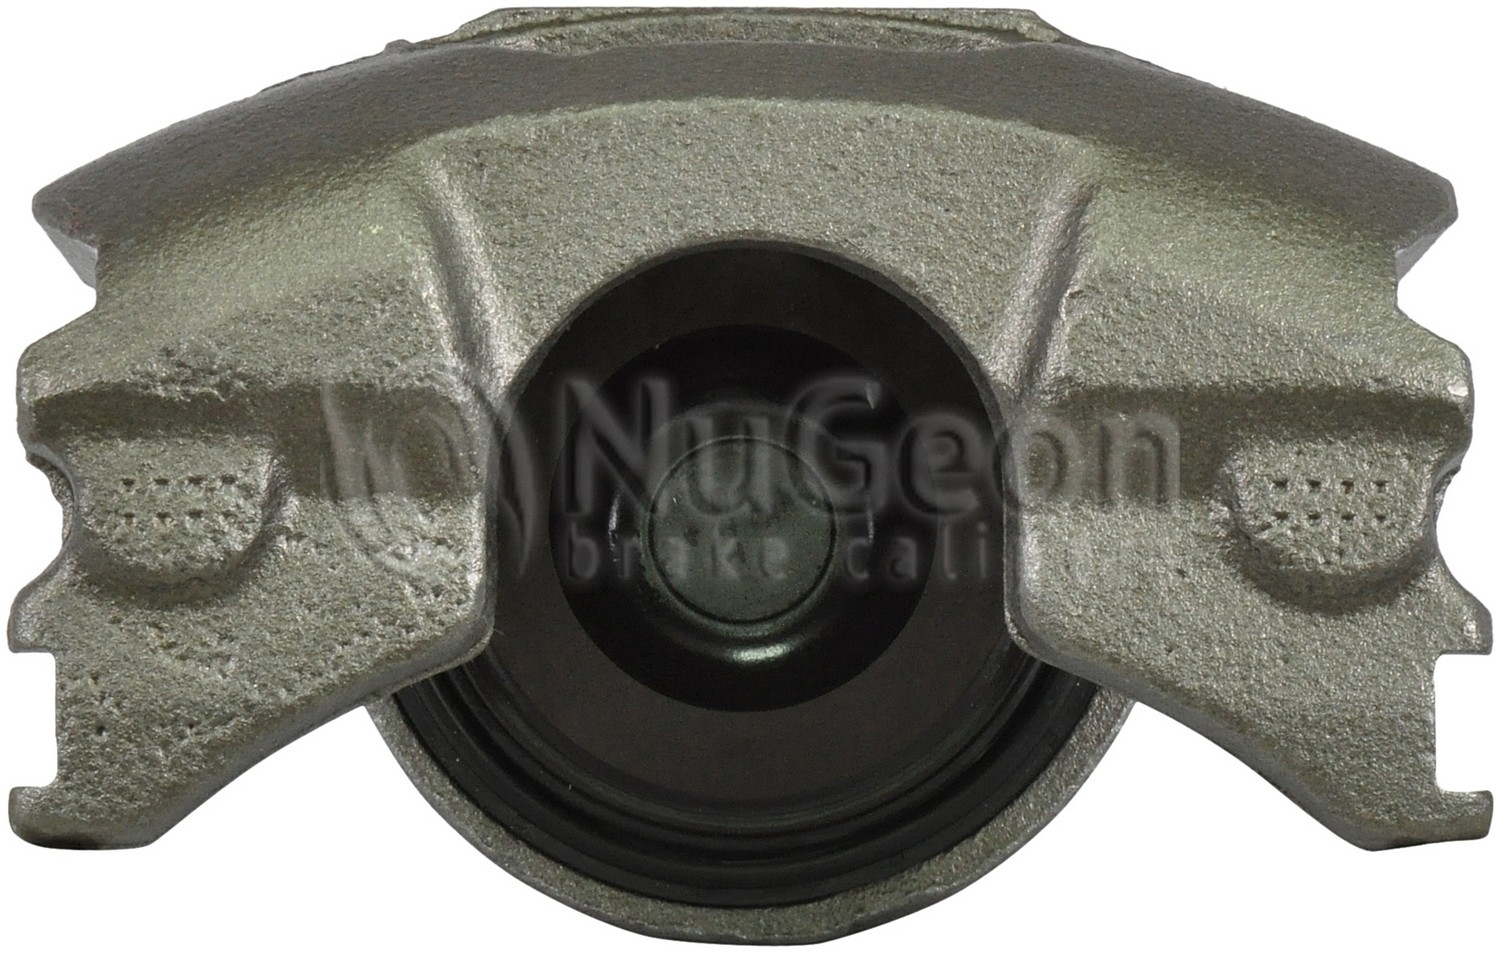 NUGEON (2017) - Reman Caliper w/ Installation Hardware - NUN 97-01132B